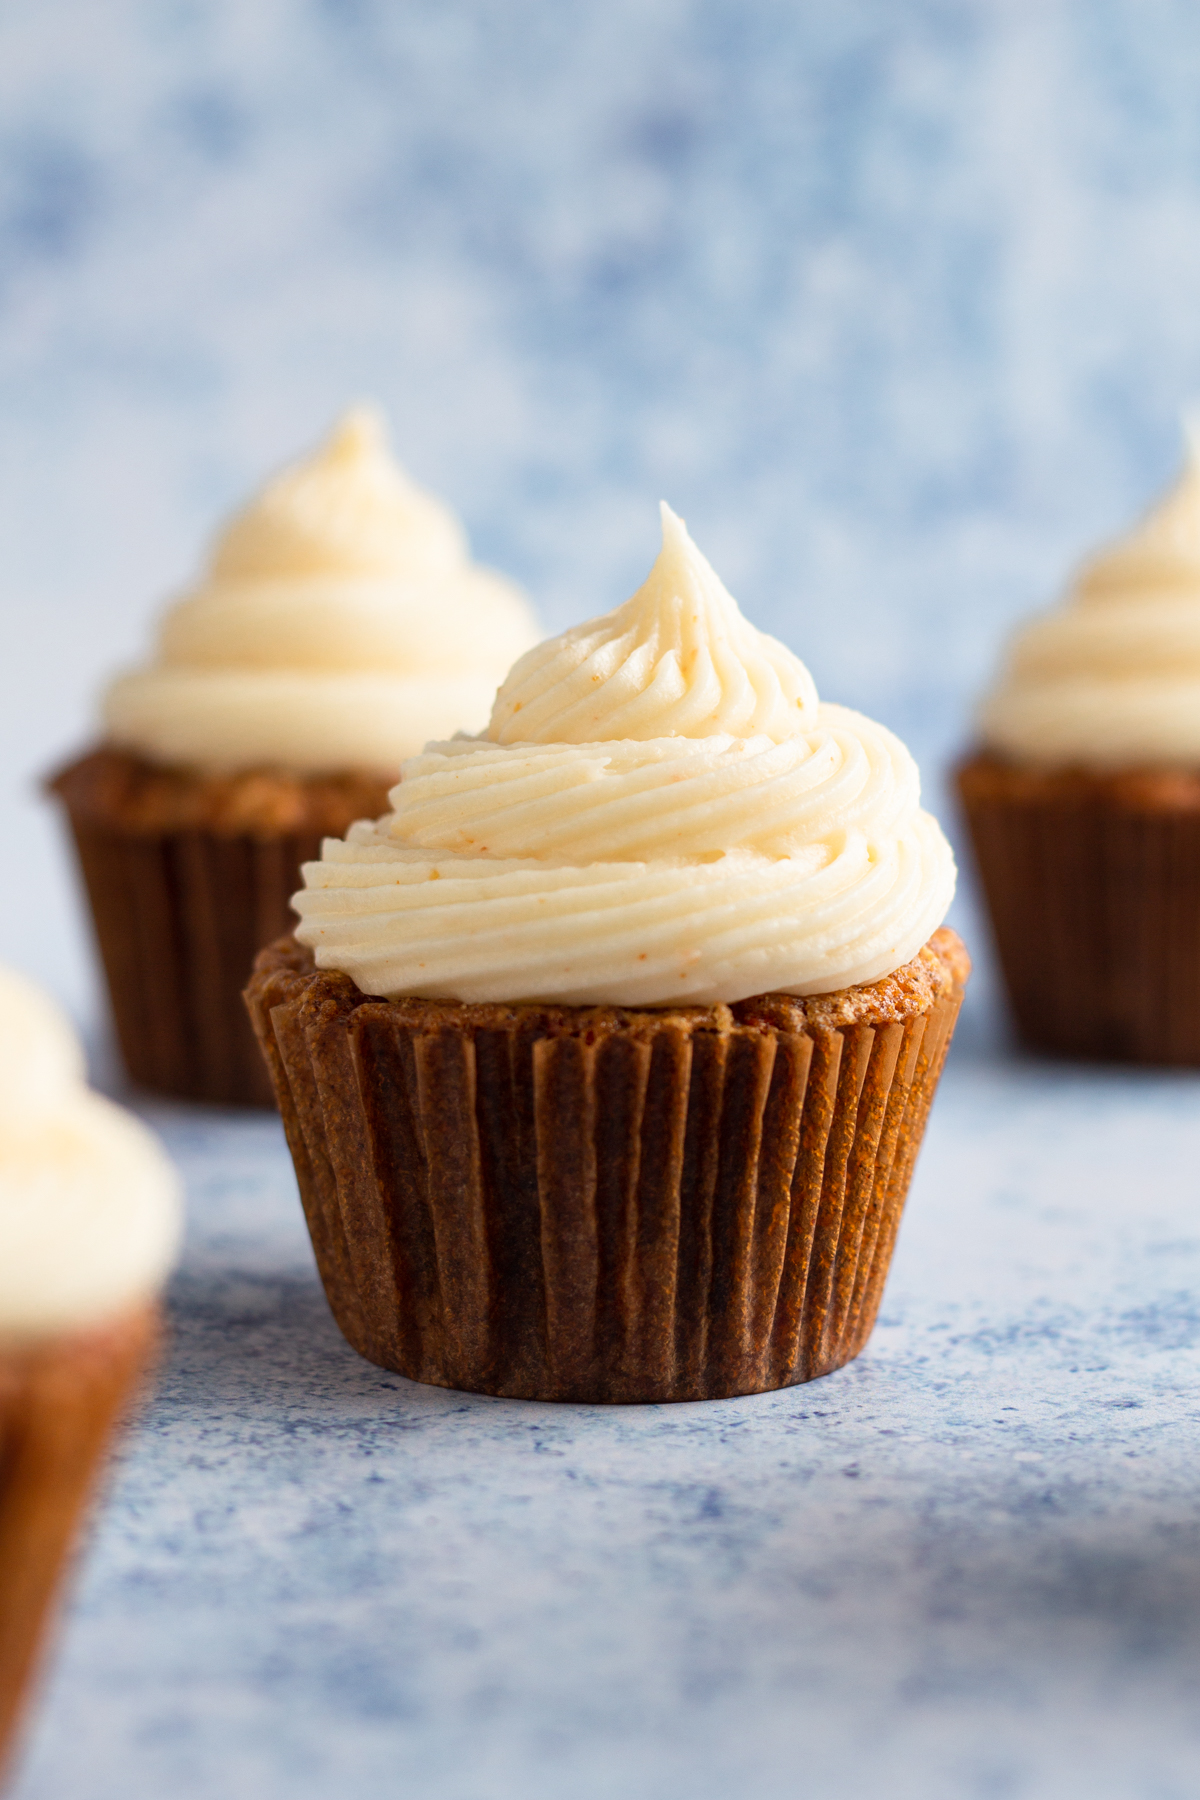 side view of carrot cake cupcakes on a blue speckled background